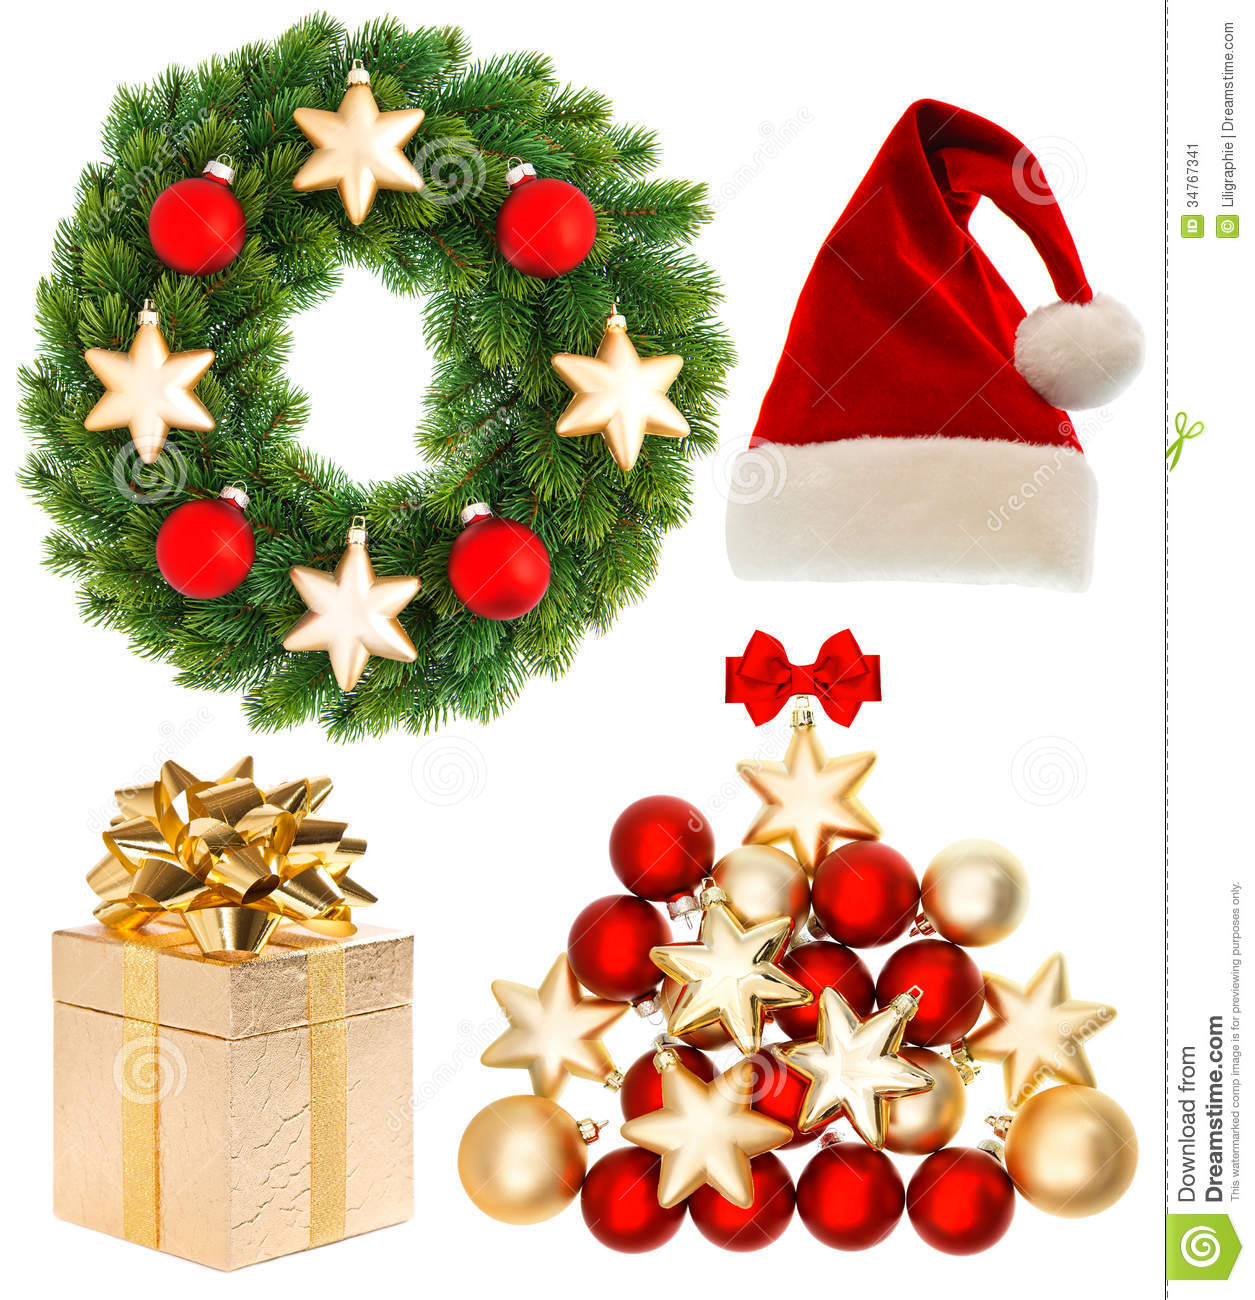 Christmas collection isolated on white background stock for Decoration stuff